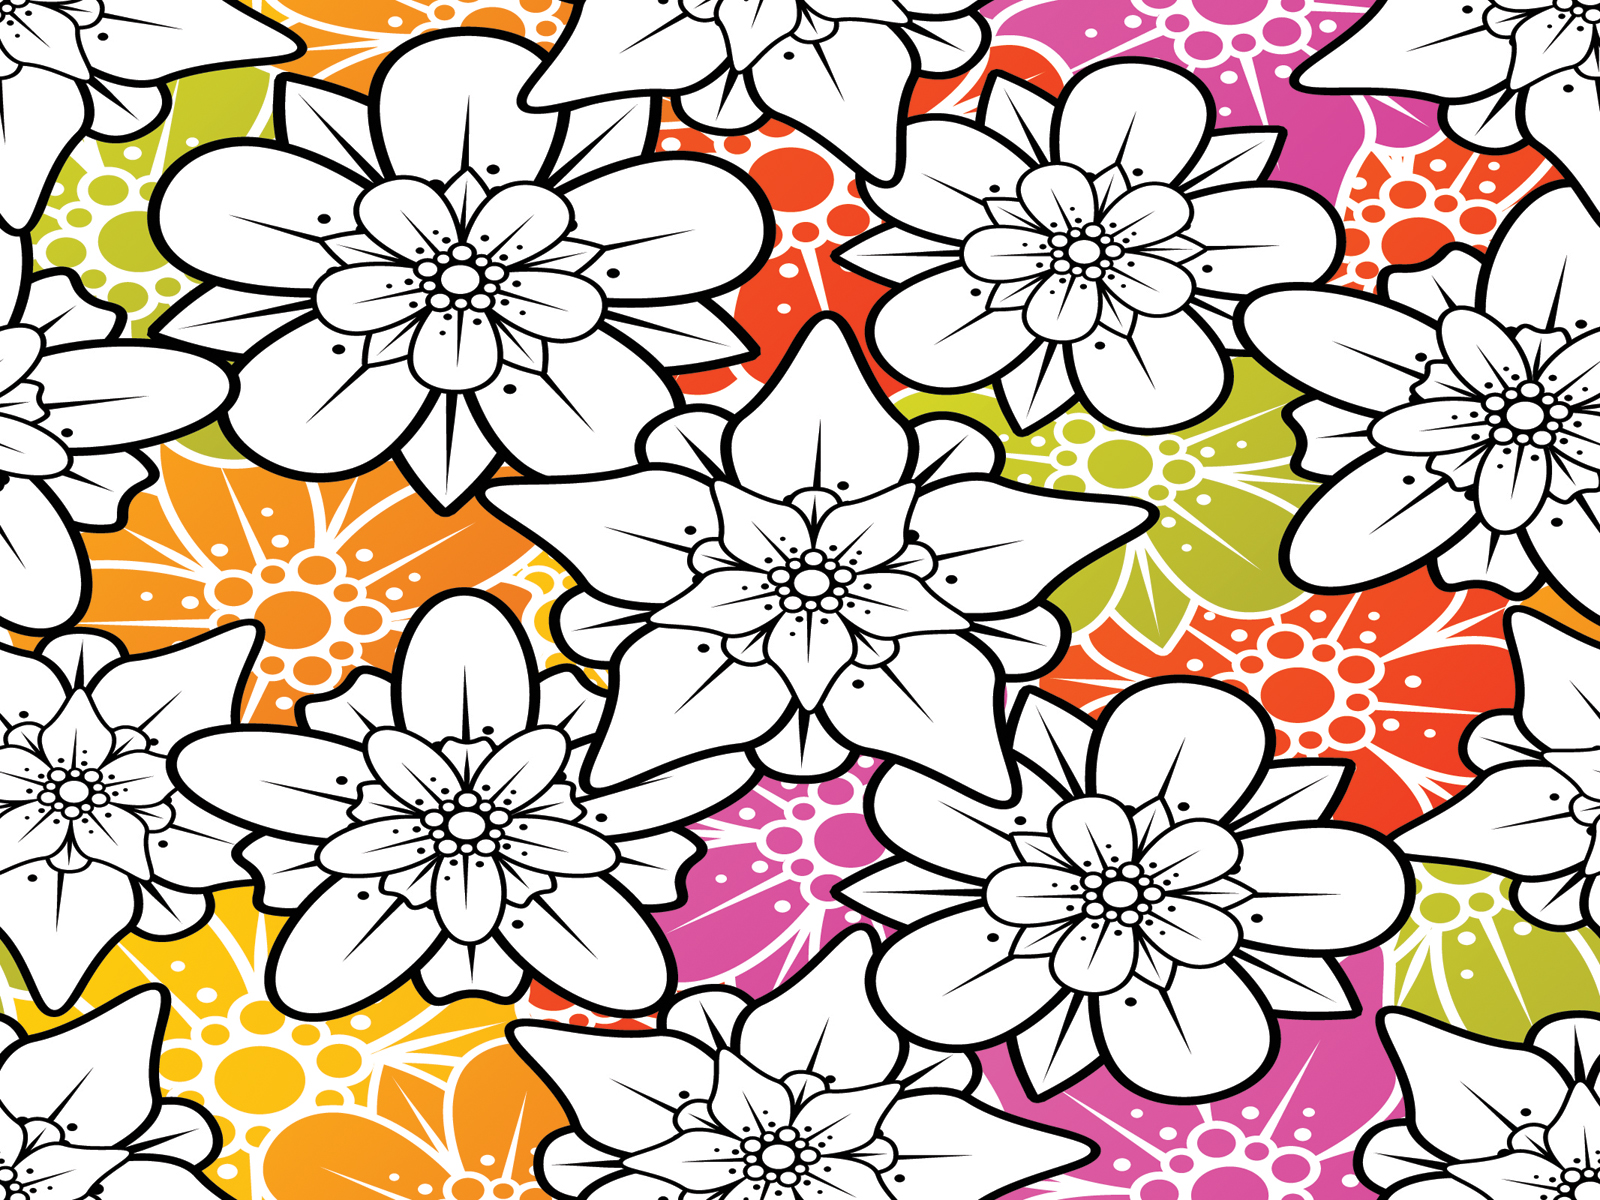 White Ornament Flowers Backgrounds